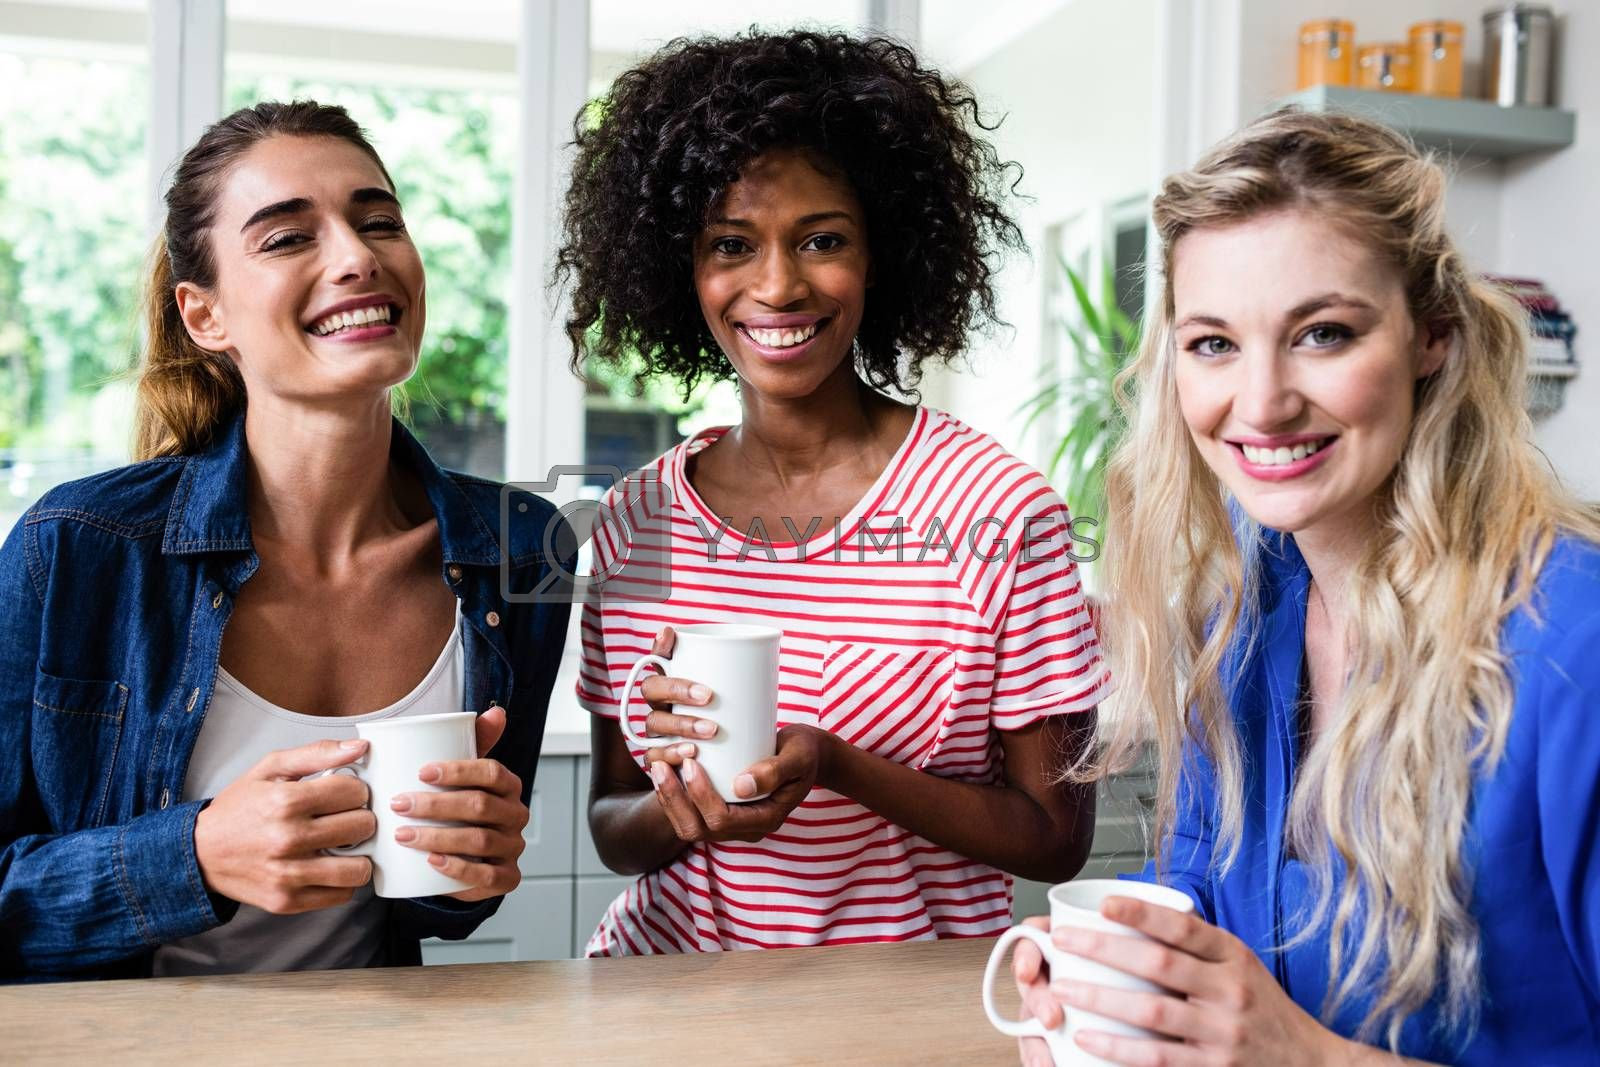 Portrait of cheerful female friends drinking coffee at table in house